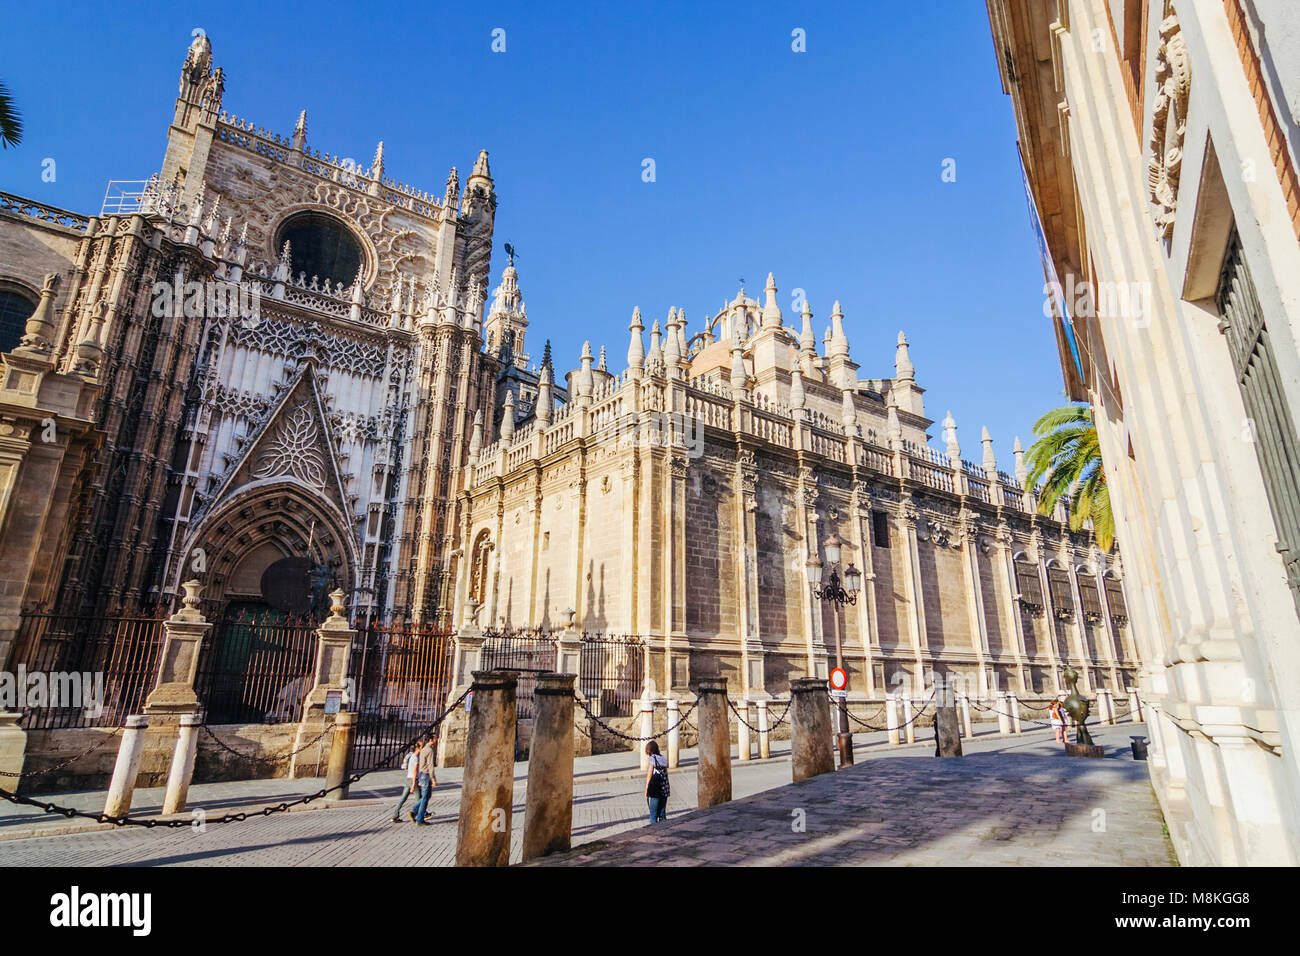 Seville, Andalusia, Spain : Tourists walk past the Puerta del Príncipe (Door of the Prince) of  the Unesco - Stock Image